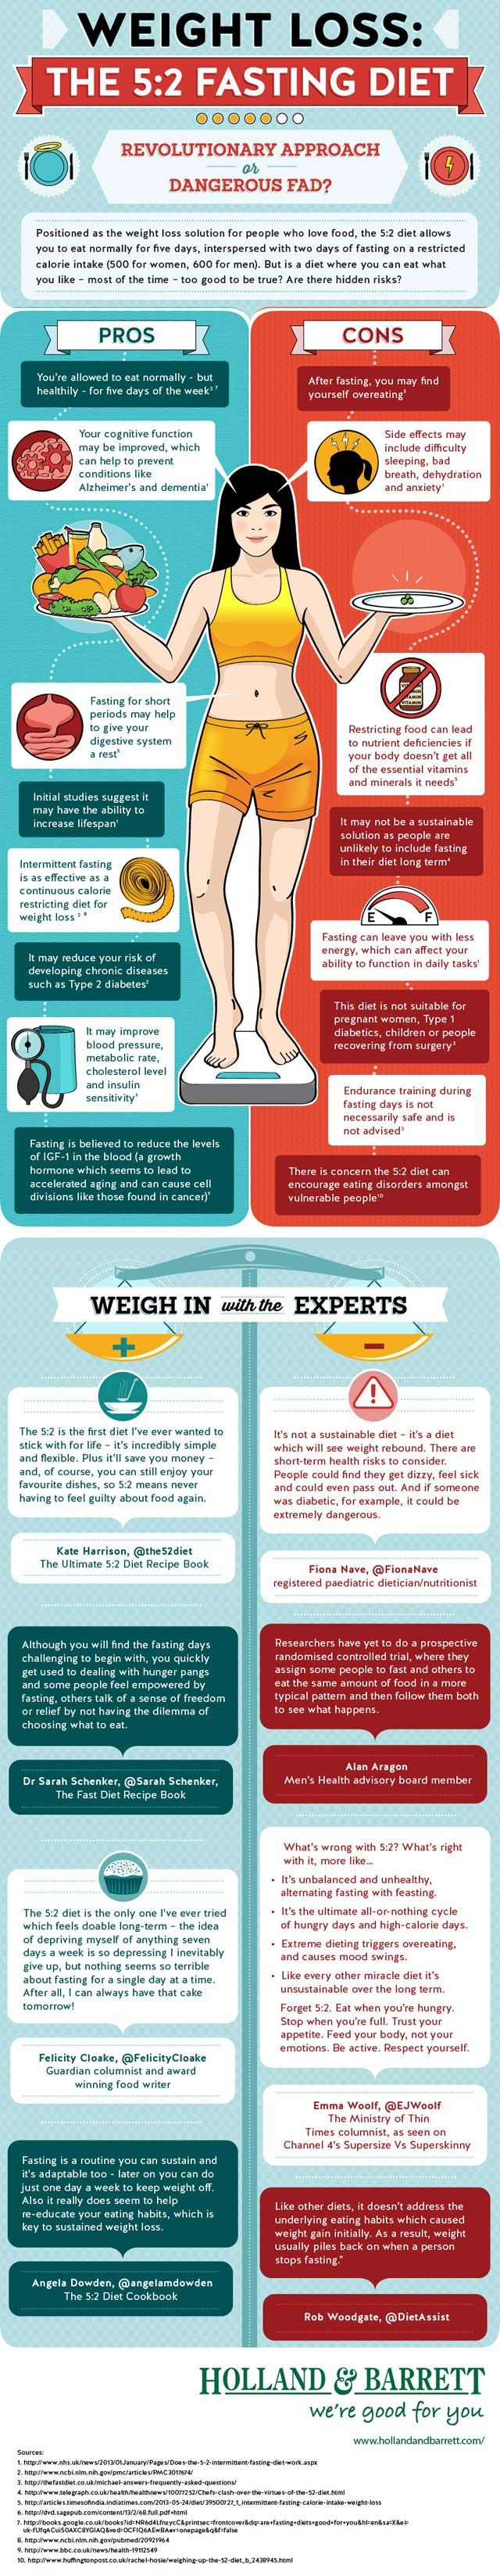 Great overview of the pros and cons of the currently popular #5:2diet. What do you think? #diets #weightloss